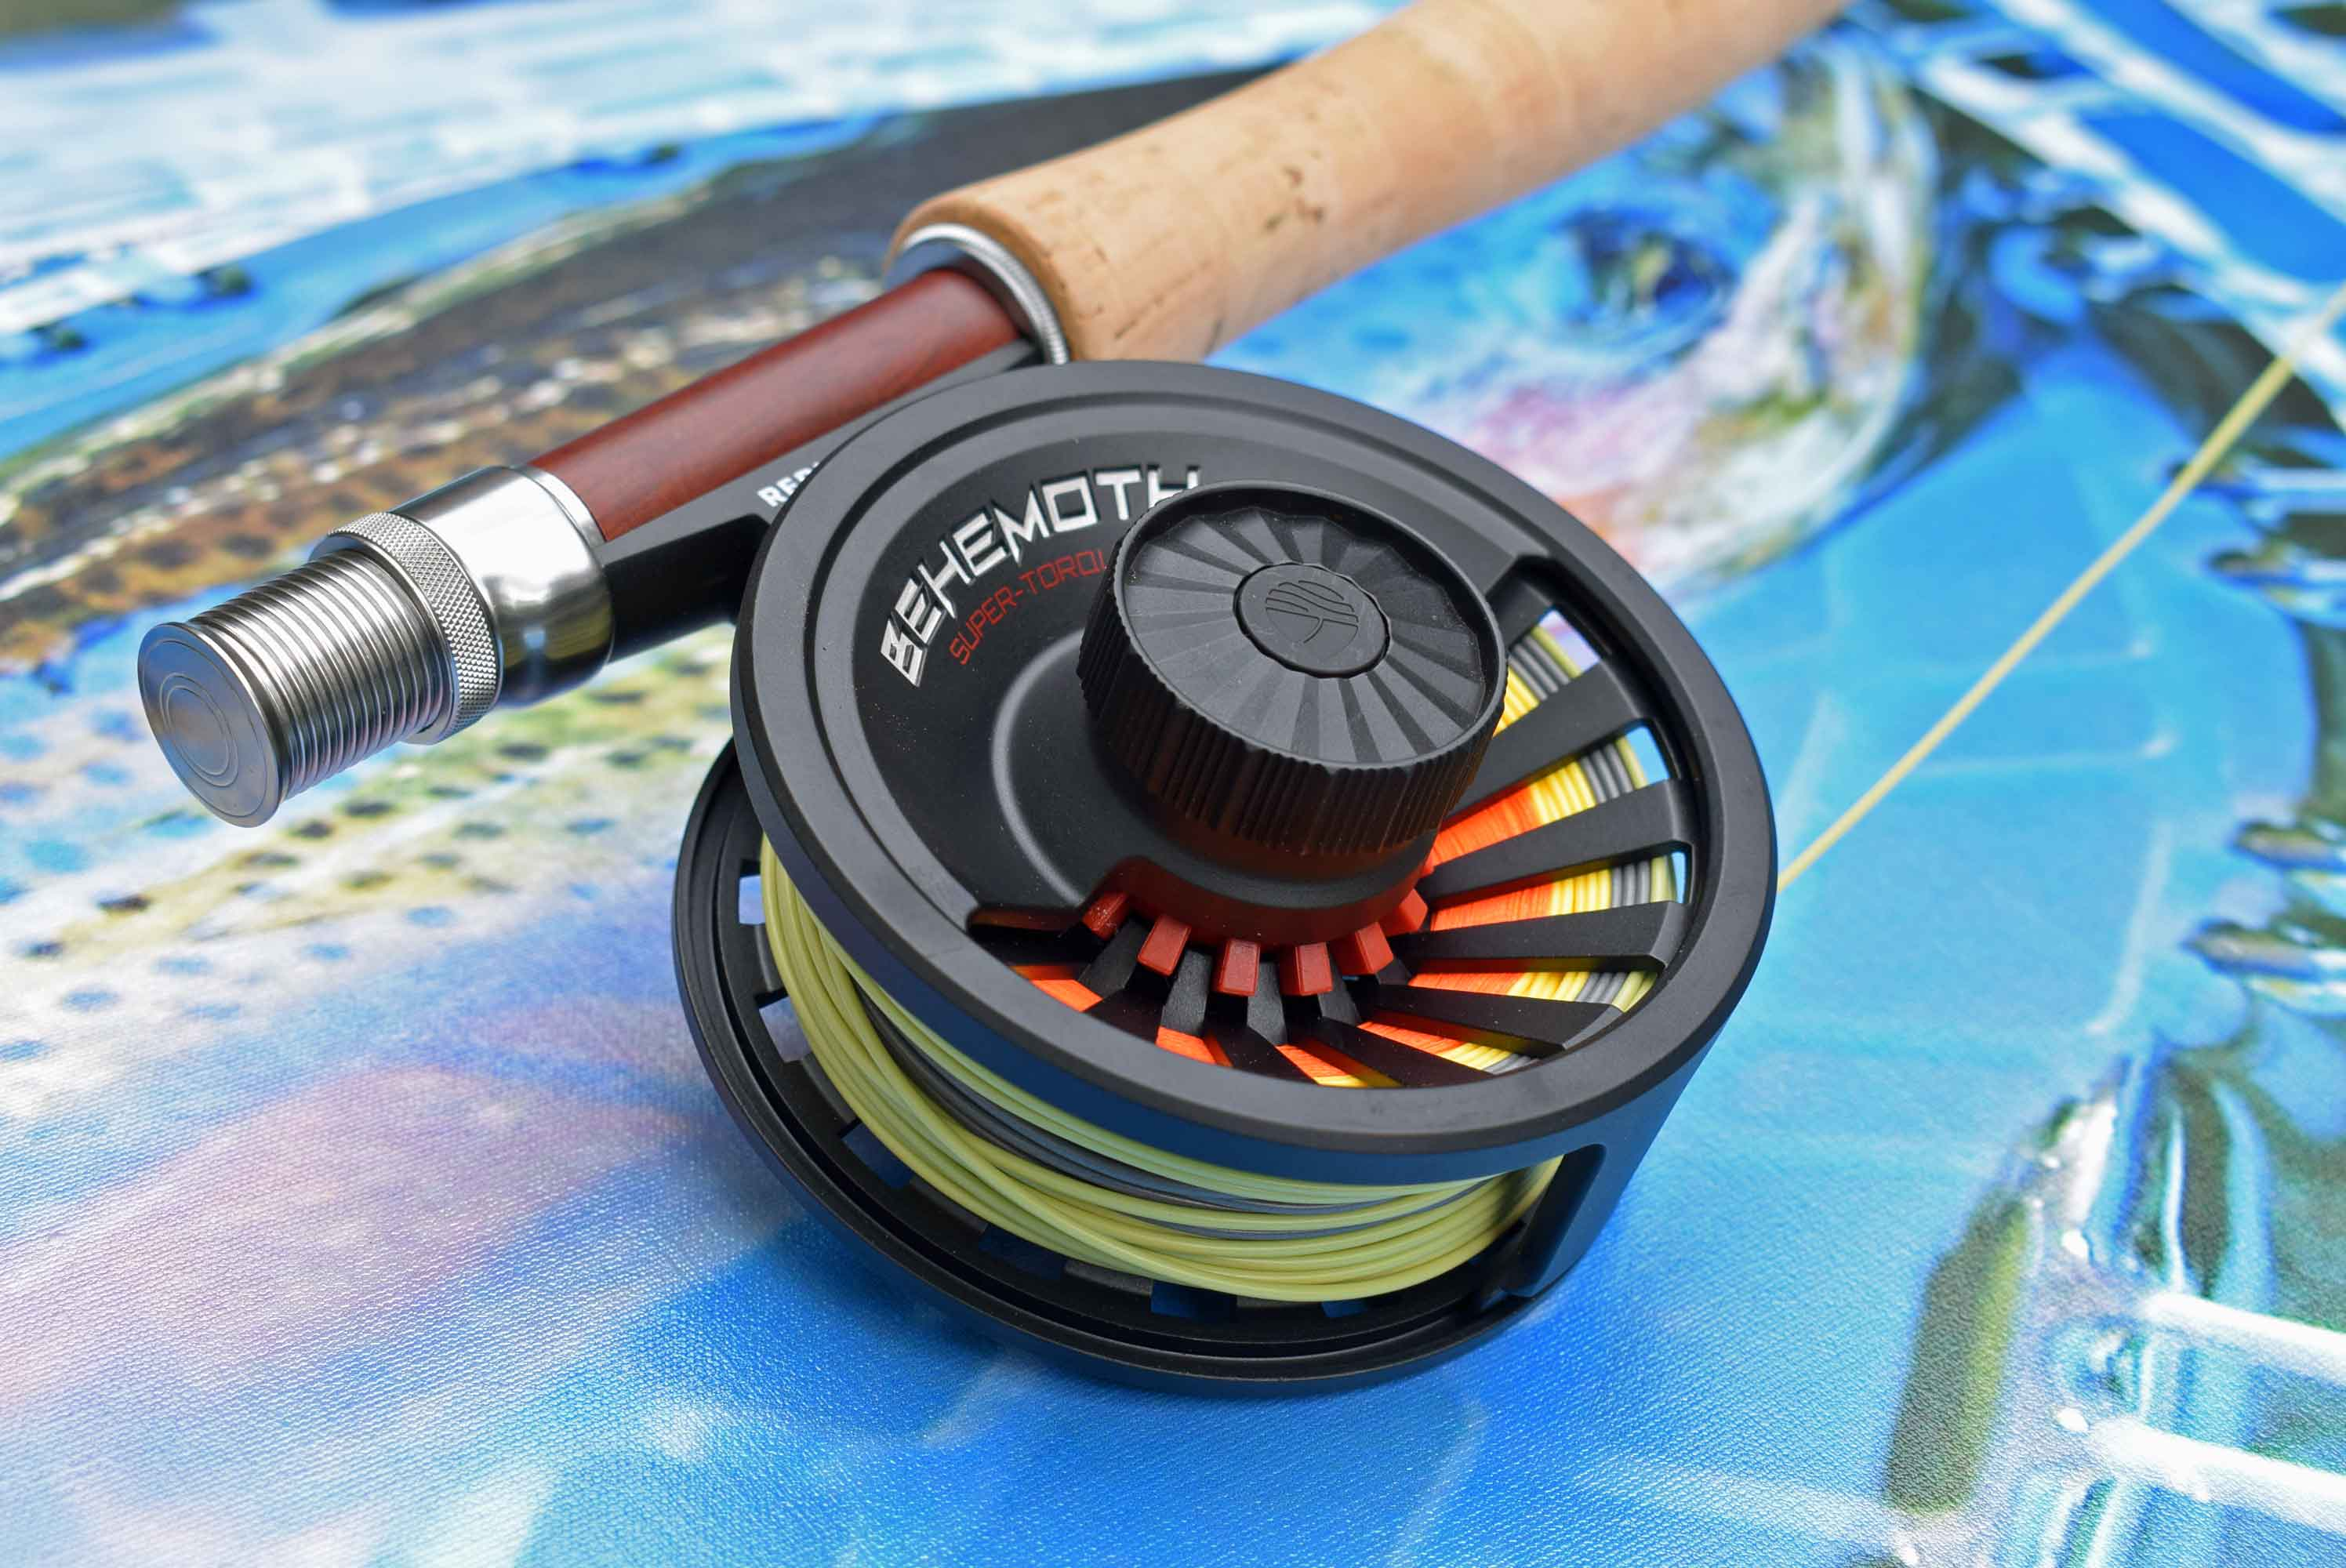 Redington Rods, Reels, Waders and Accessories